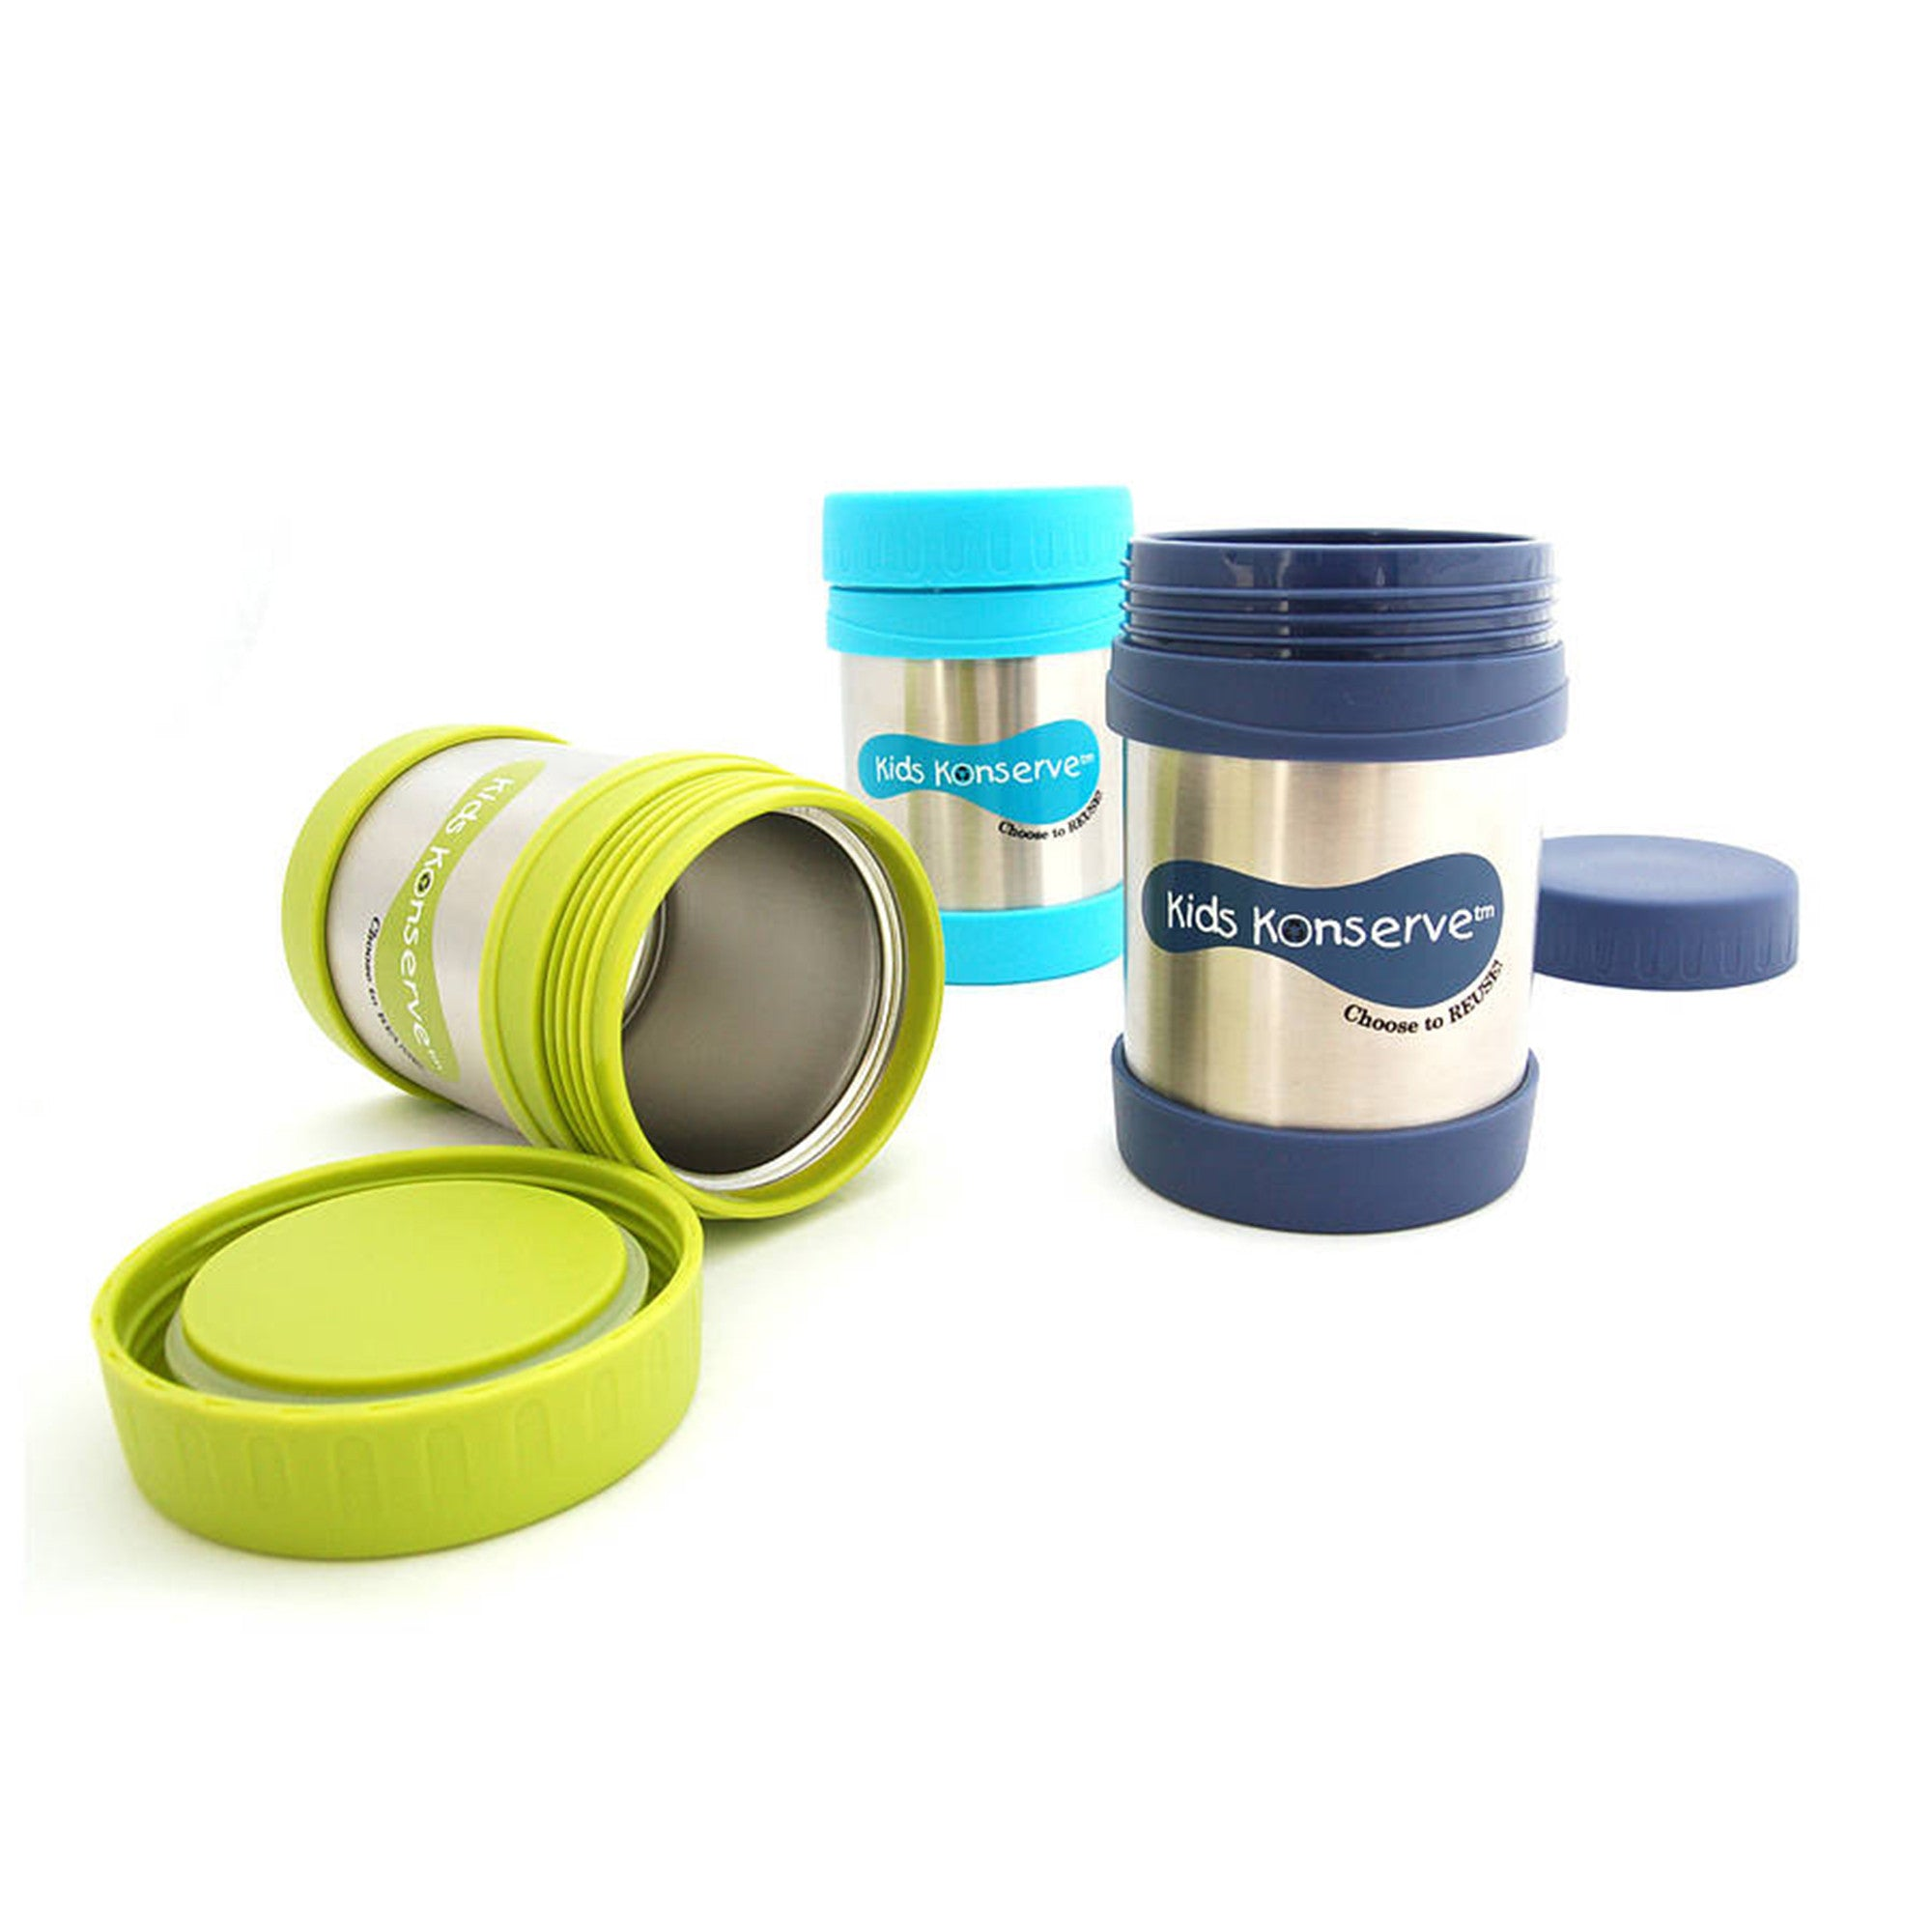 Kids Konserve Insulated Food Jar Kids Konserve Thermoses at Little Earth Nest Eco Shop